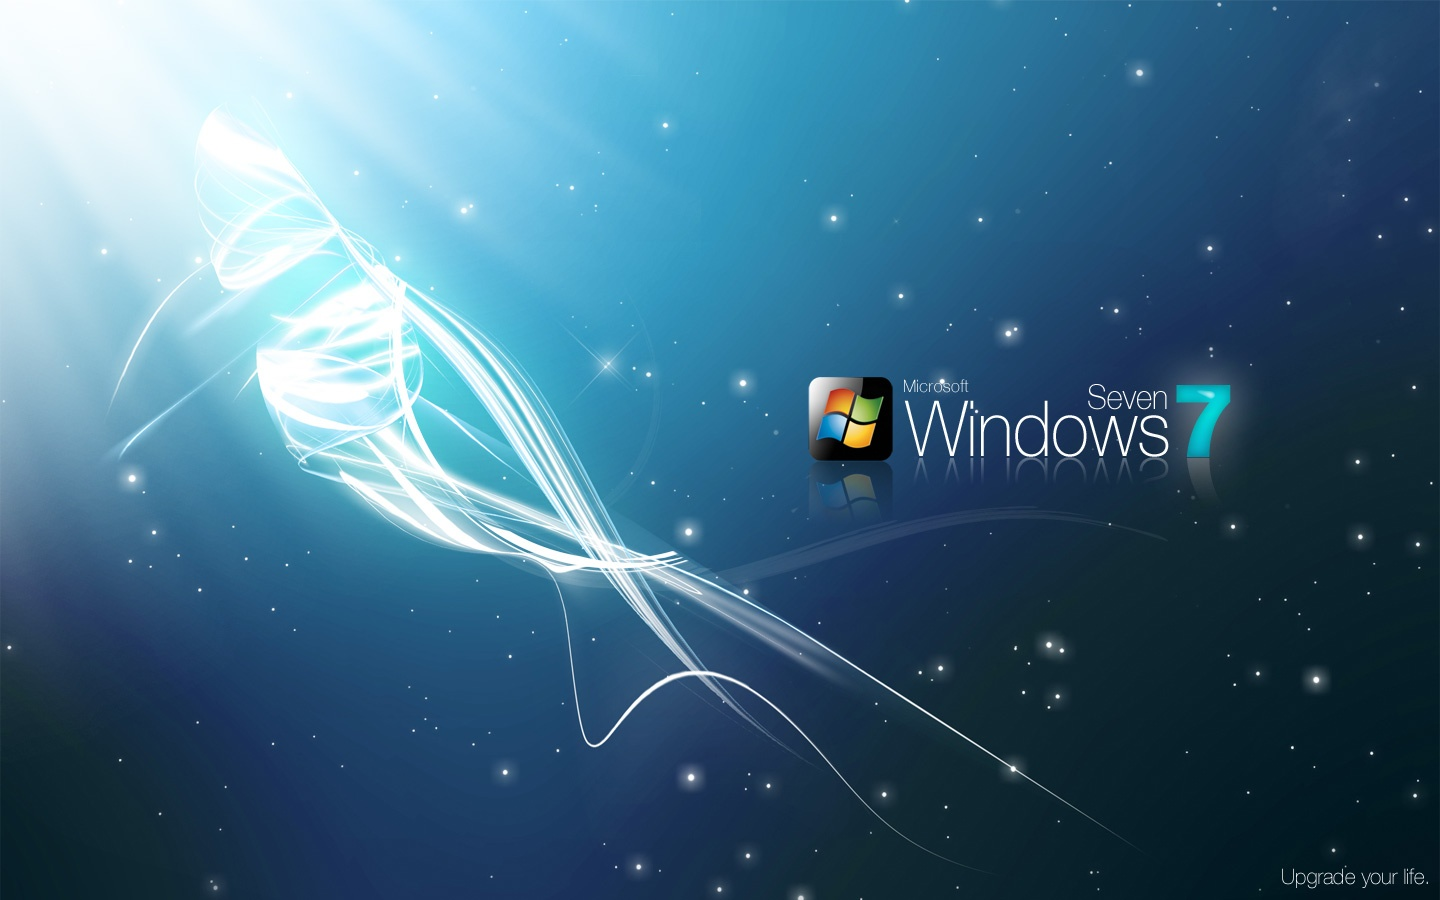 Wallpaper downloader for windows 7 - Windows 7 Upgrade Your Life